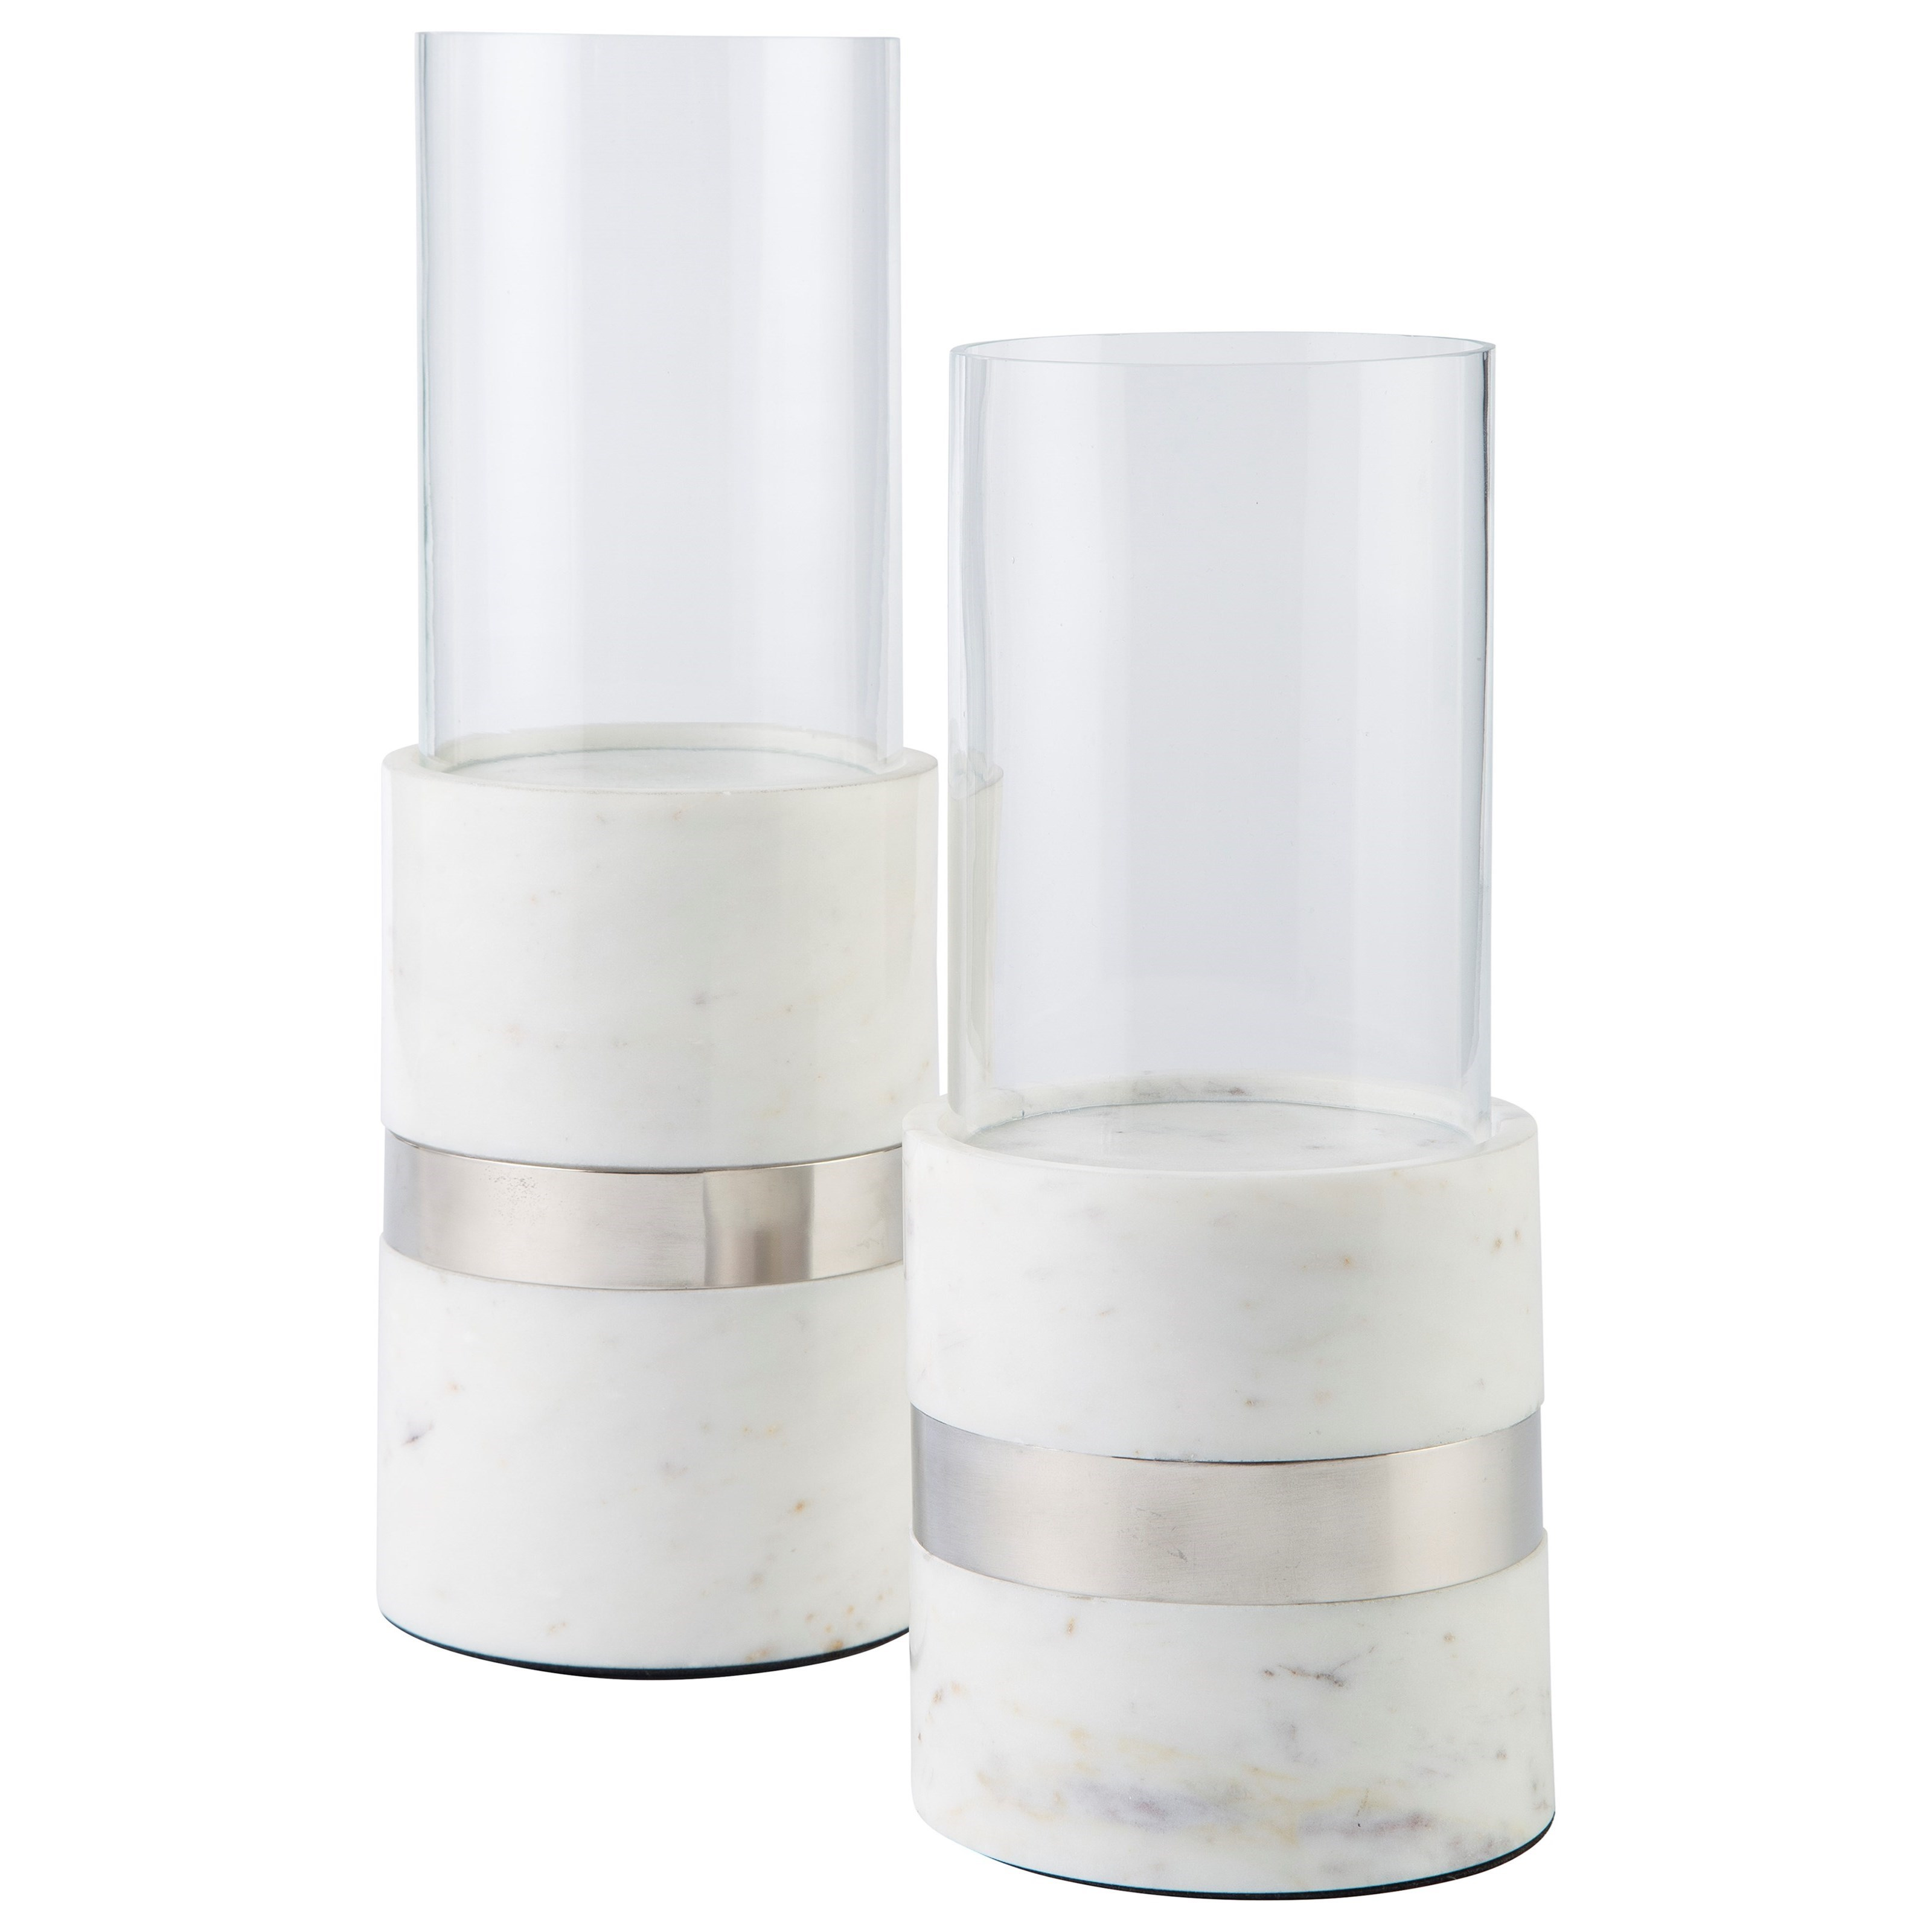 Accents Gracelyn White/Silver Candle Holder Set by Signature Design by Ashley at Catalog Outlet